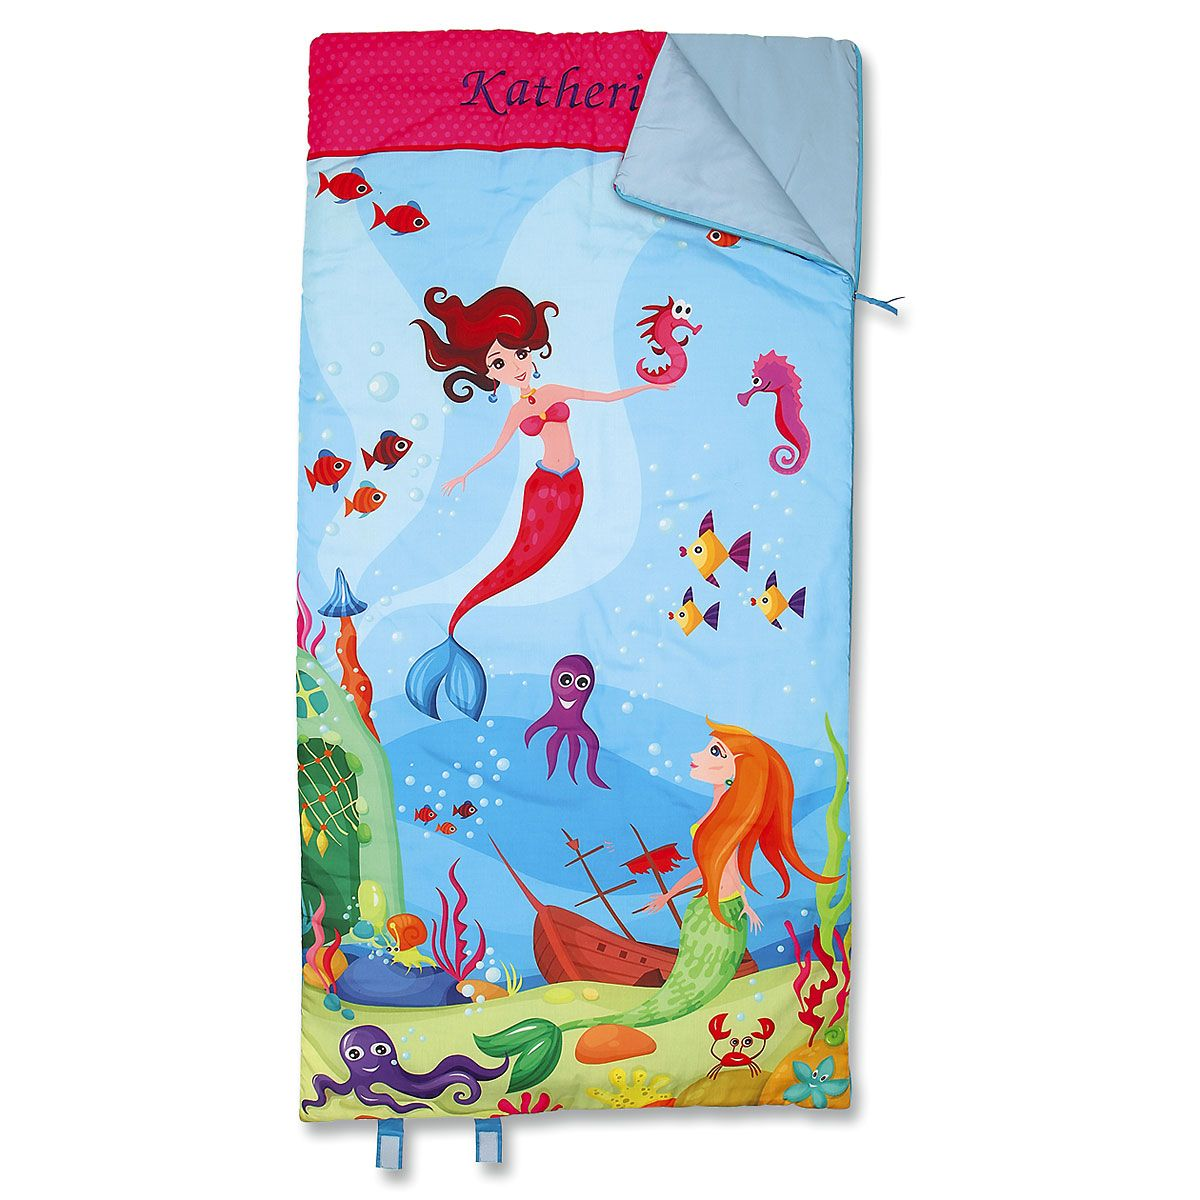 Personalized Mermaid Sleeping Bag